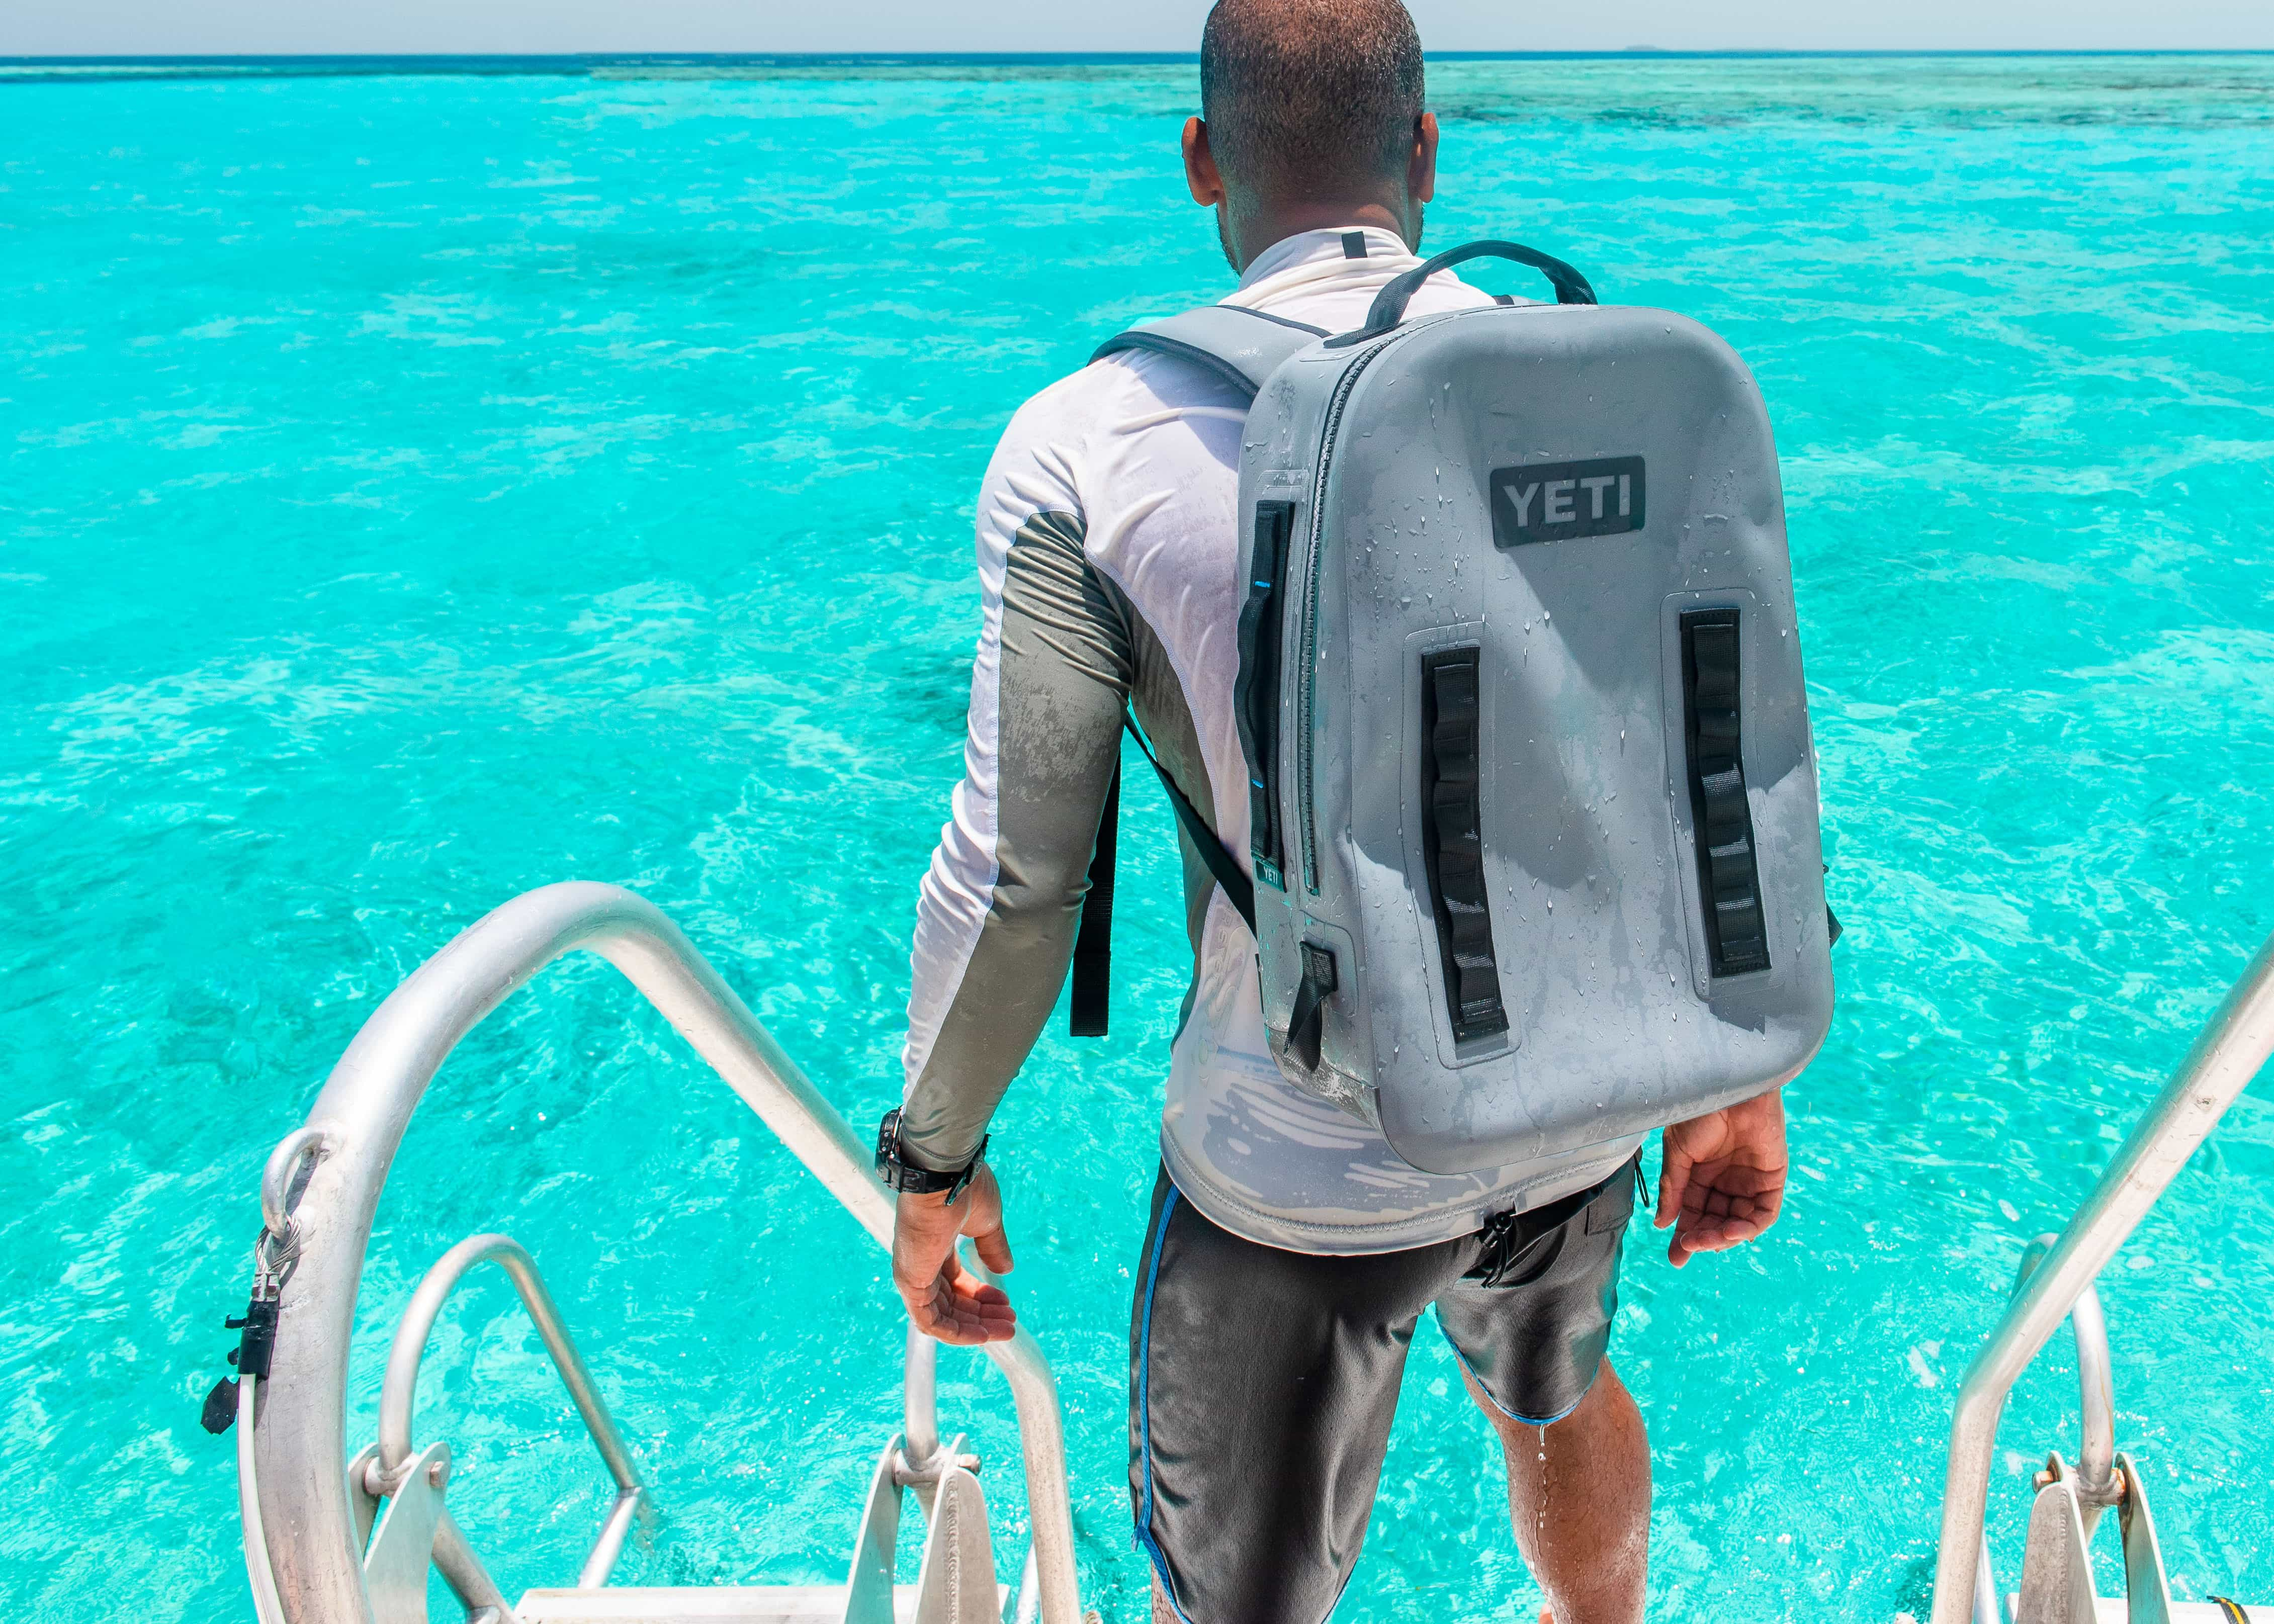 The Yeti Panga Backpack